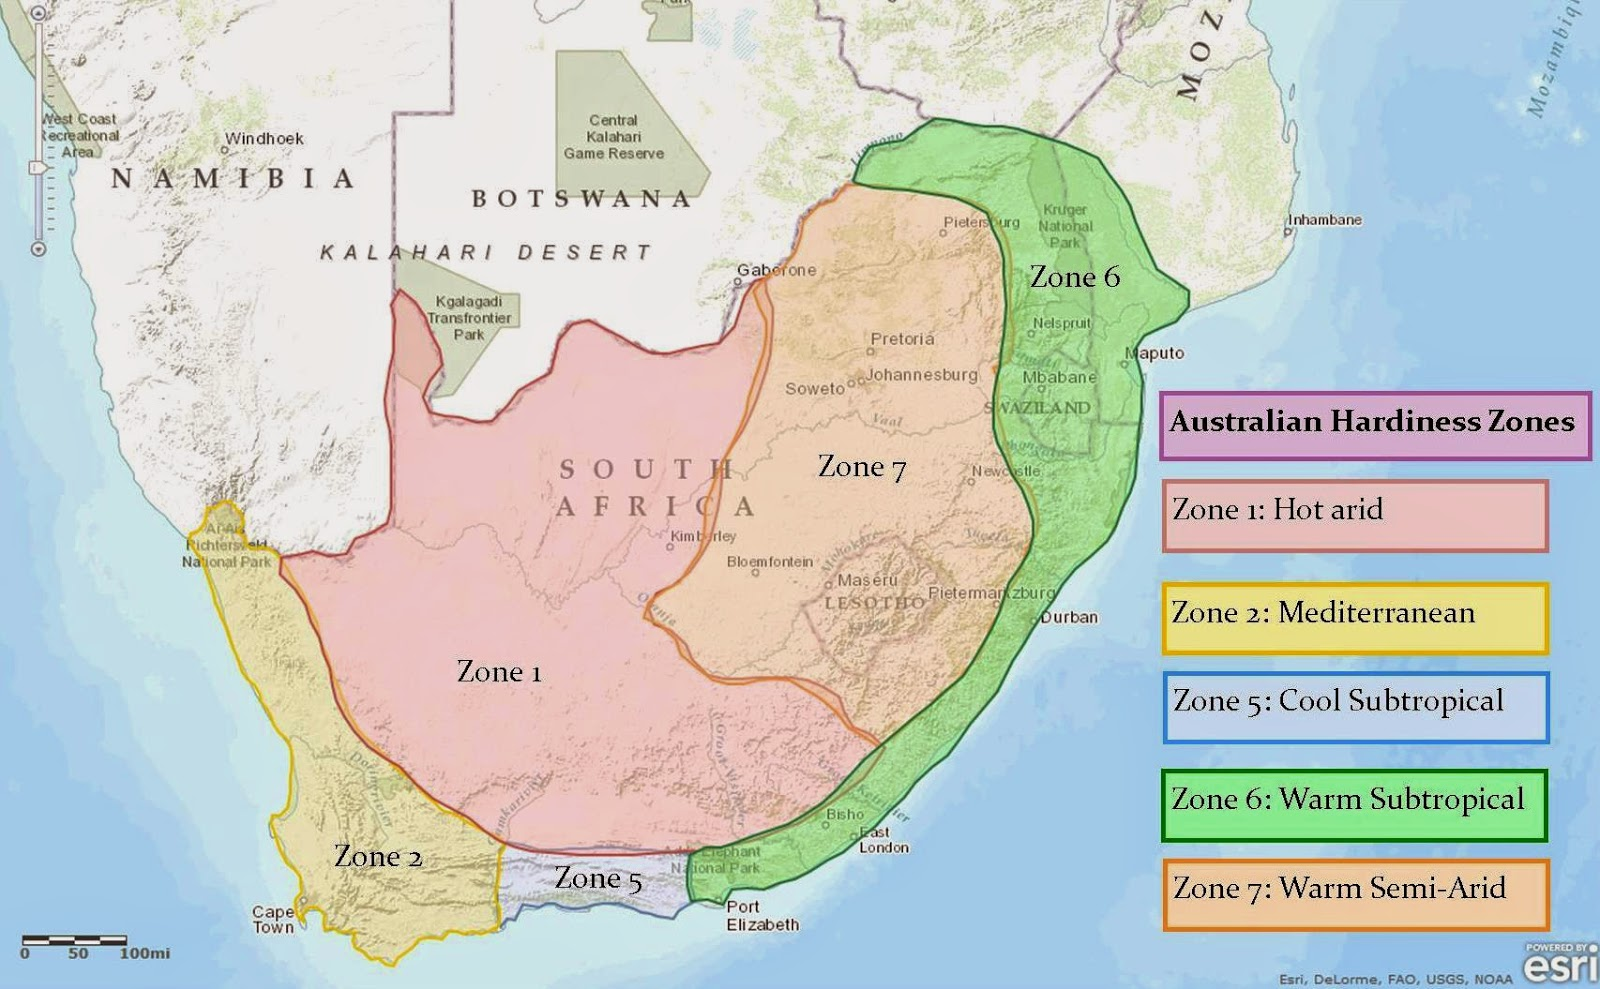 South Africa Climate Zone Map